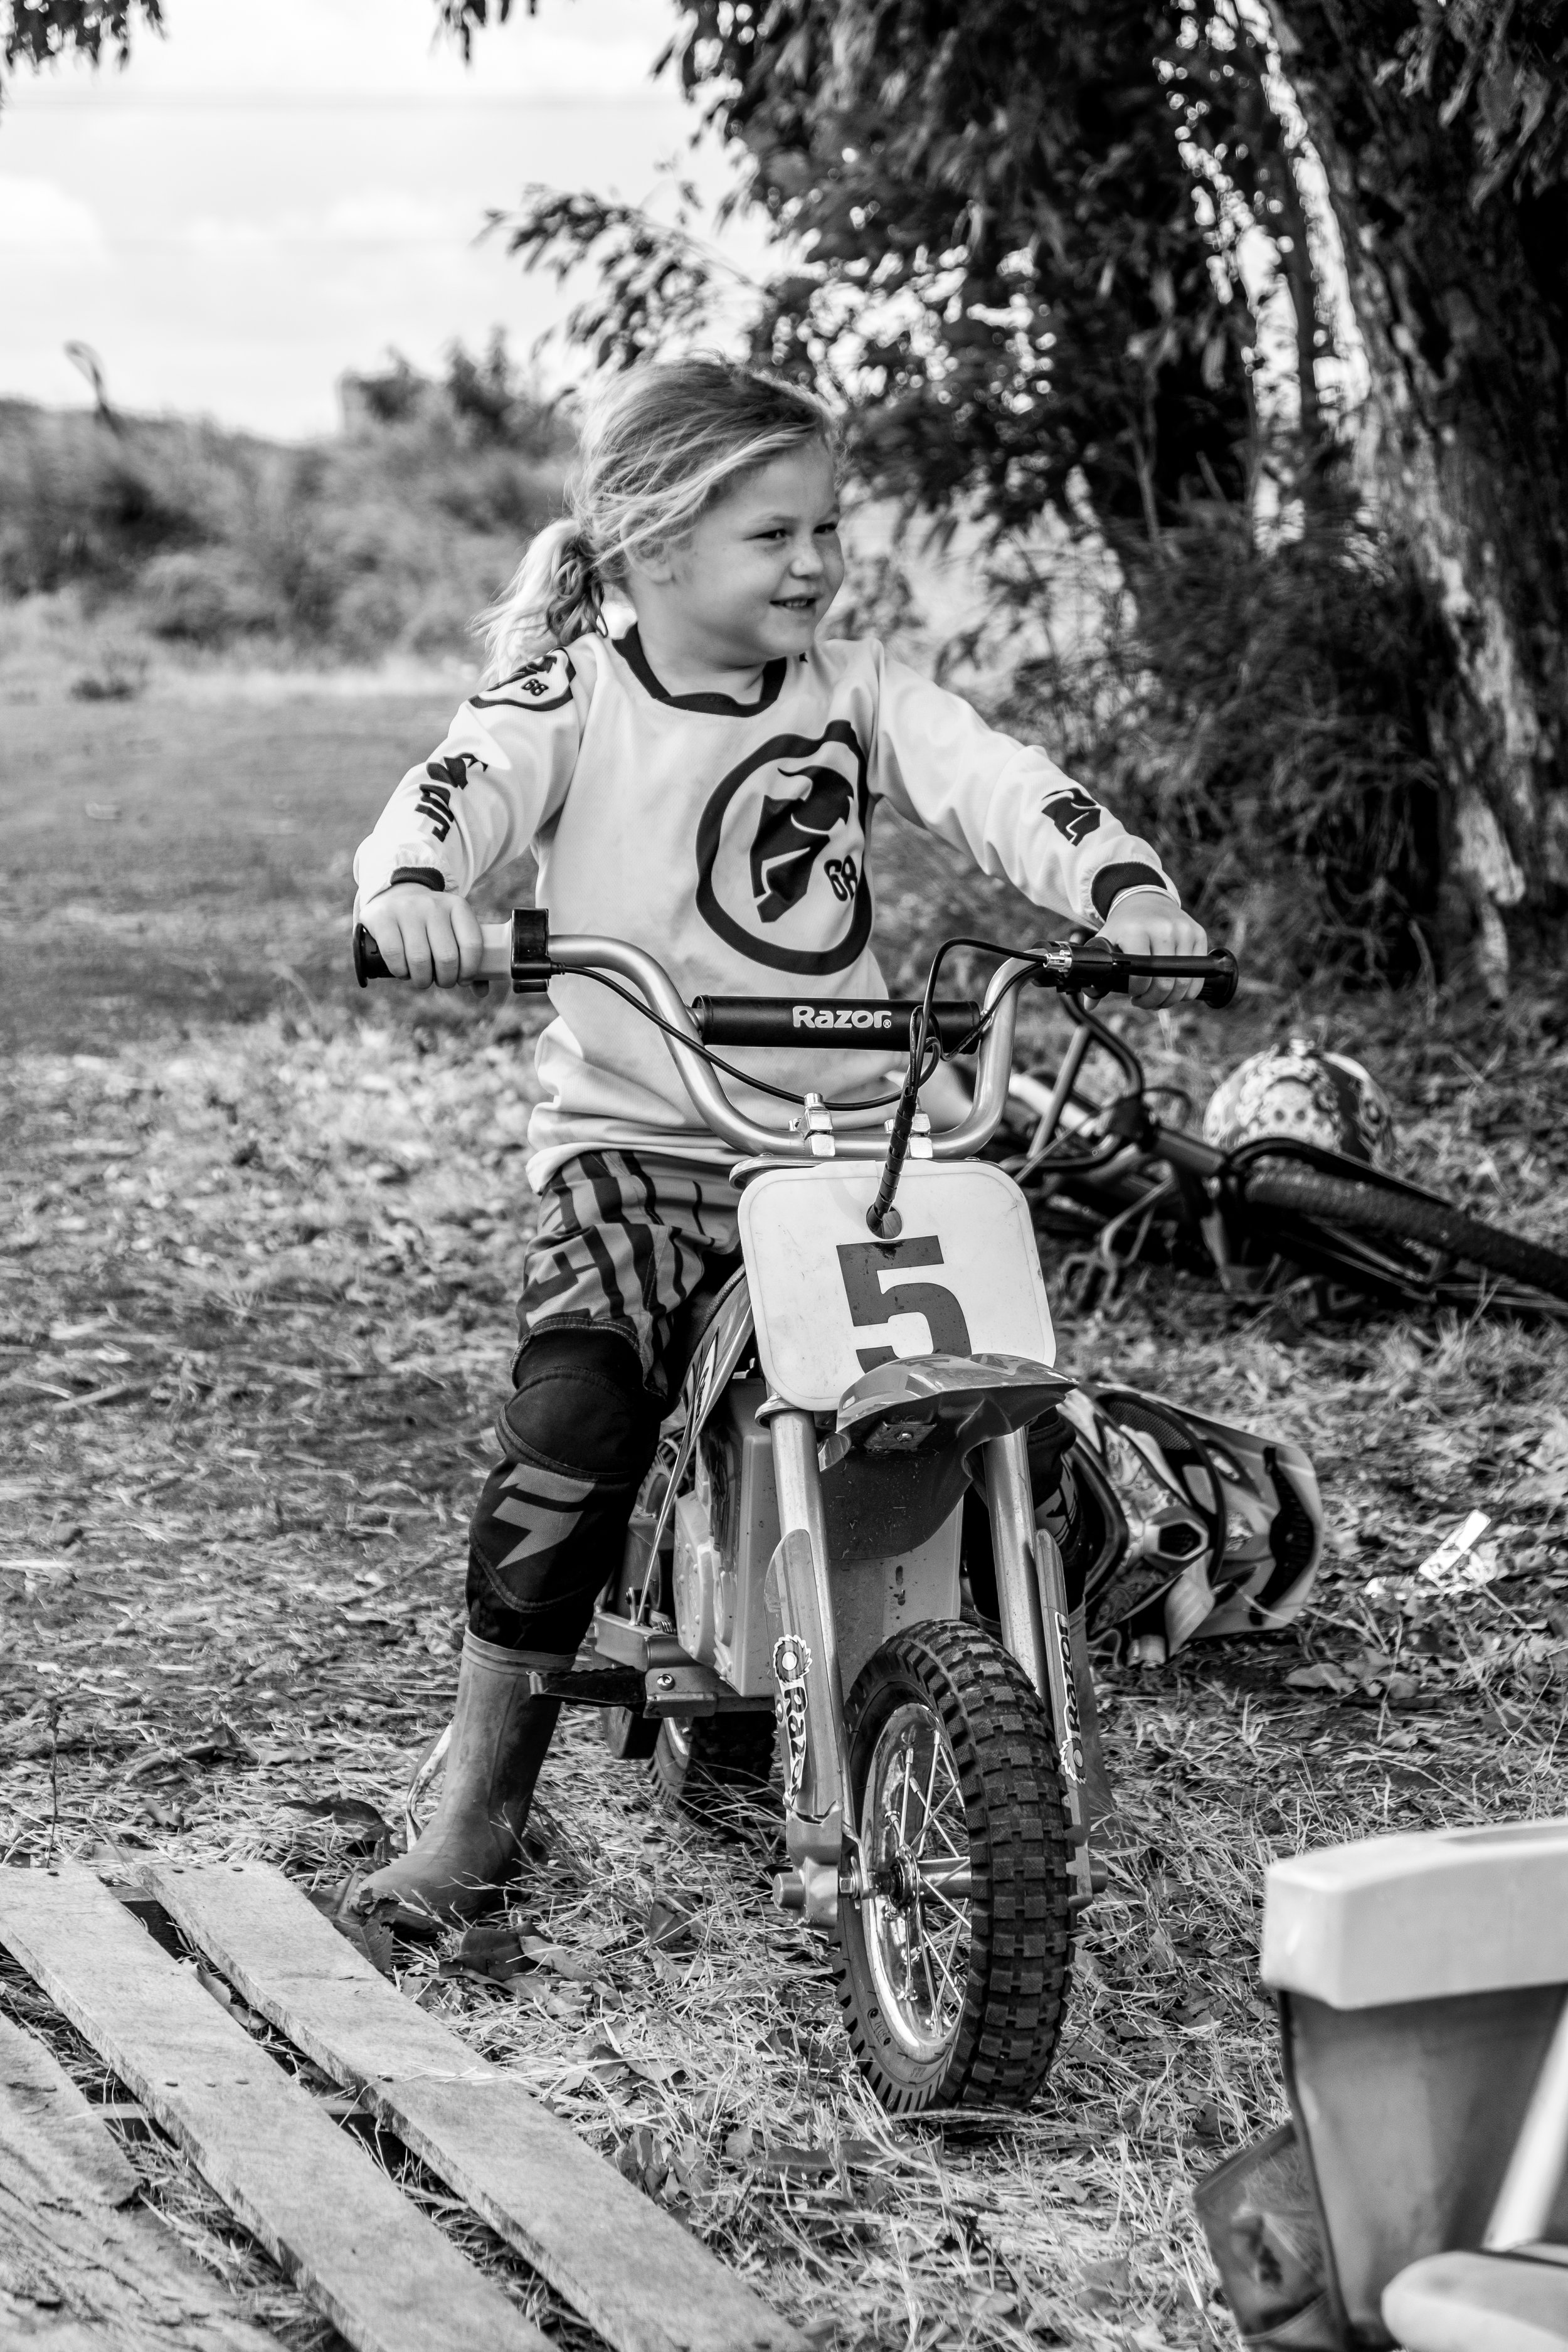 dirtbikes in black and white